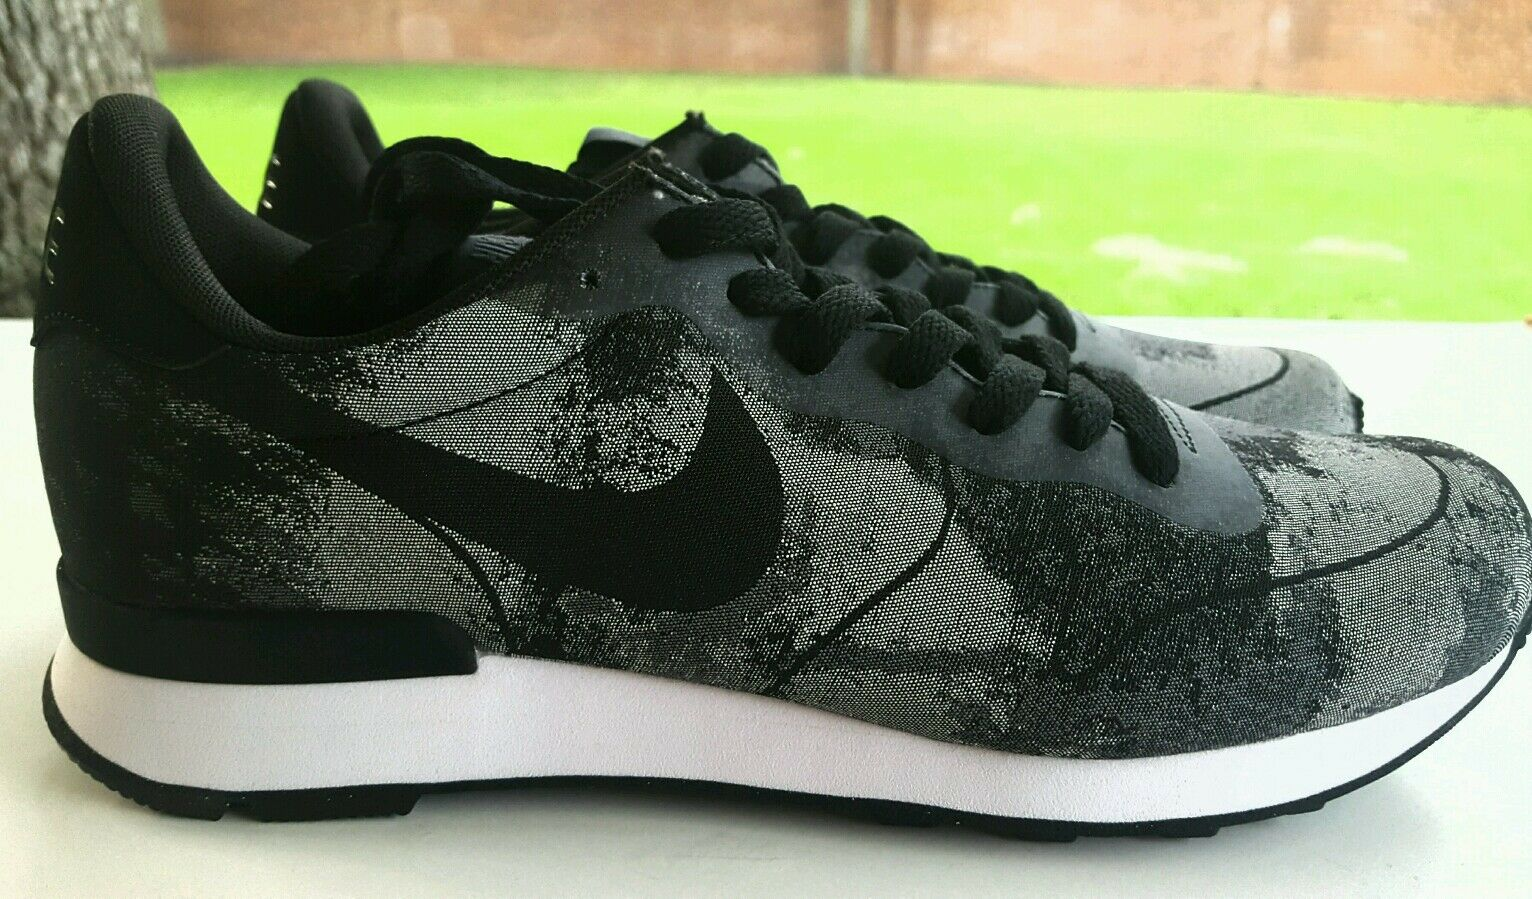 NIKE INTERNATIONALIST JCRD COOL GREY BLACK SIZE 9 725063-001